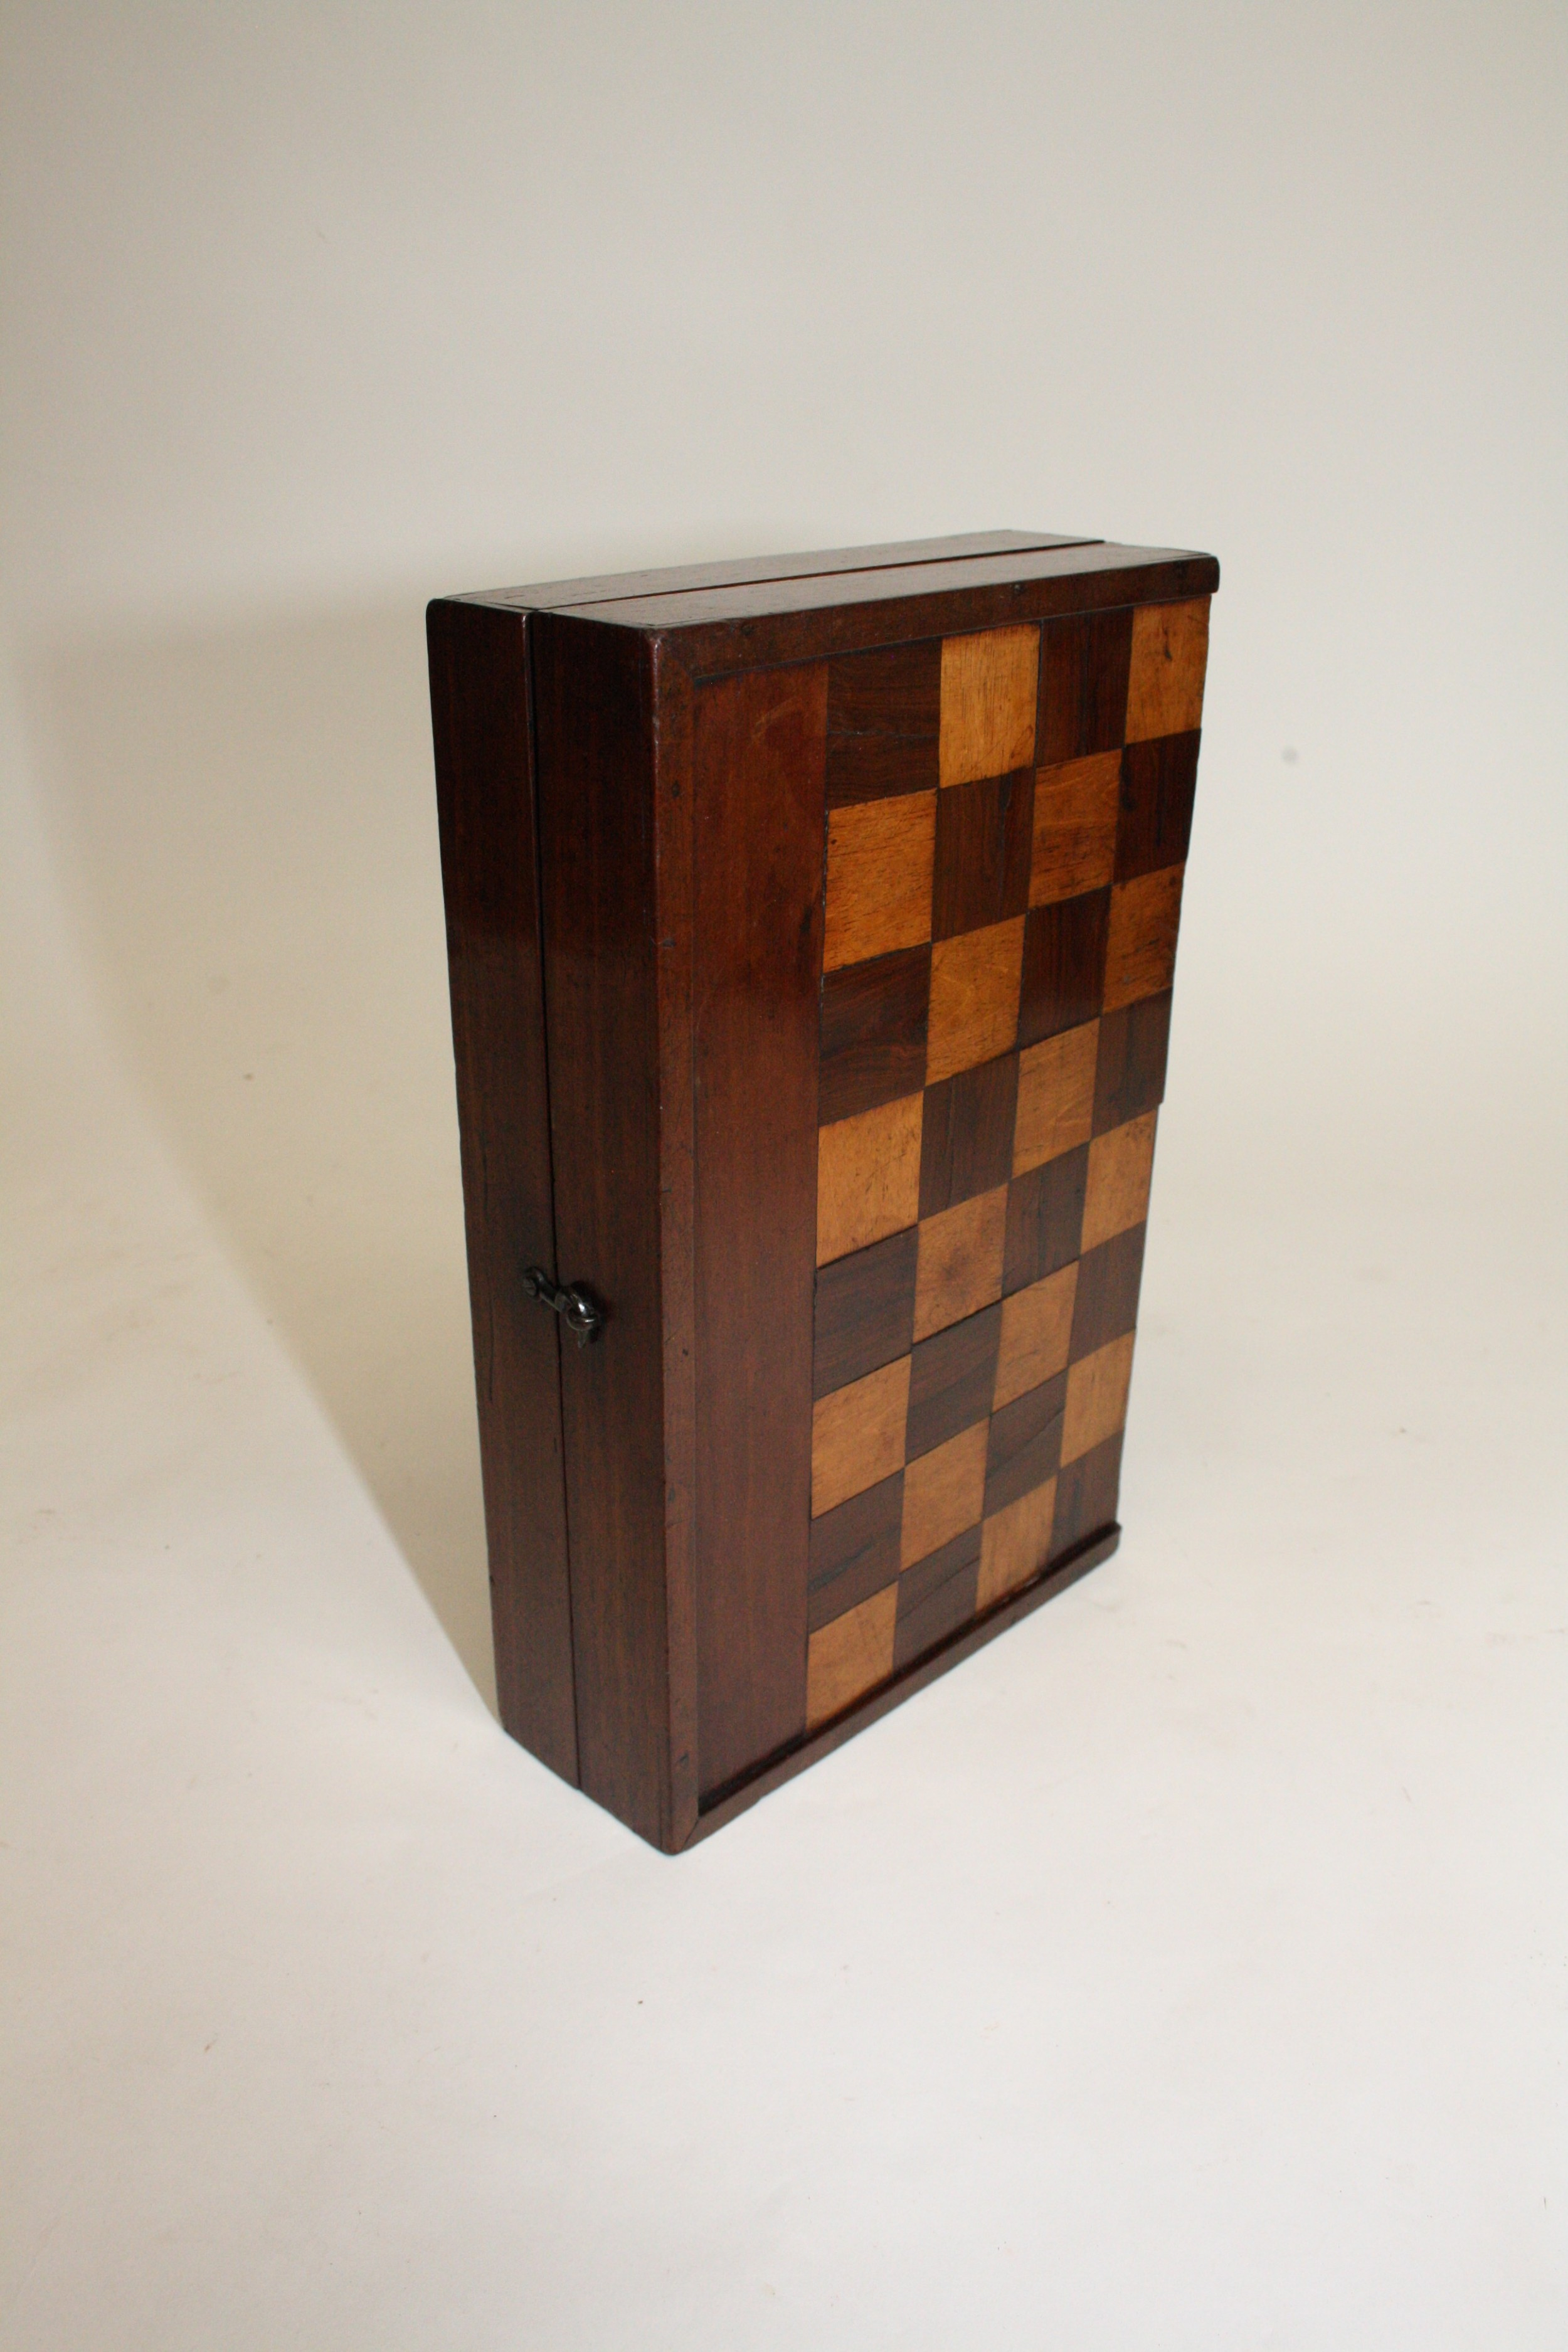 19th century chess and backgammon board